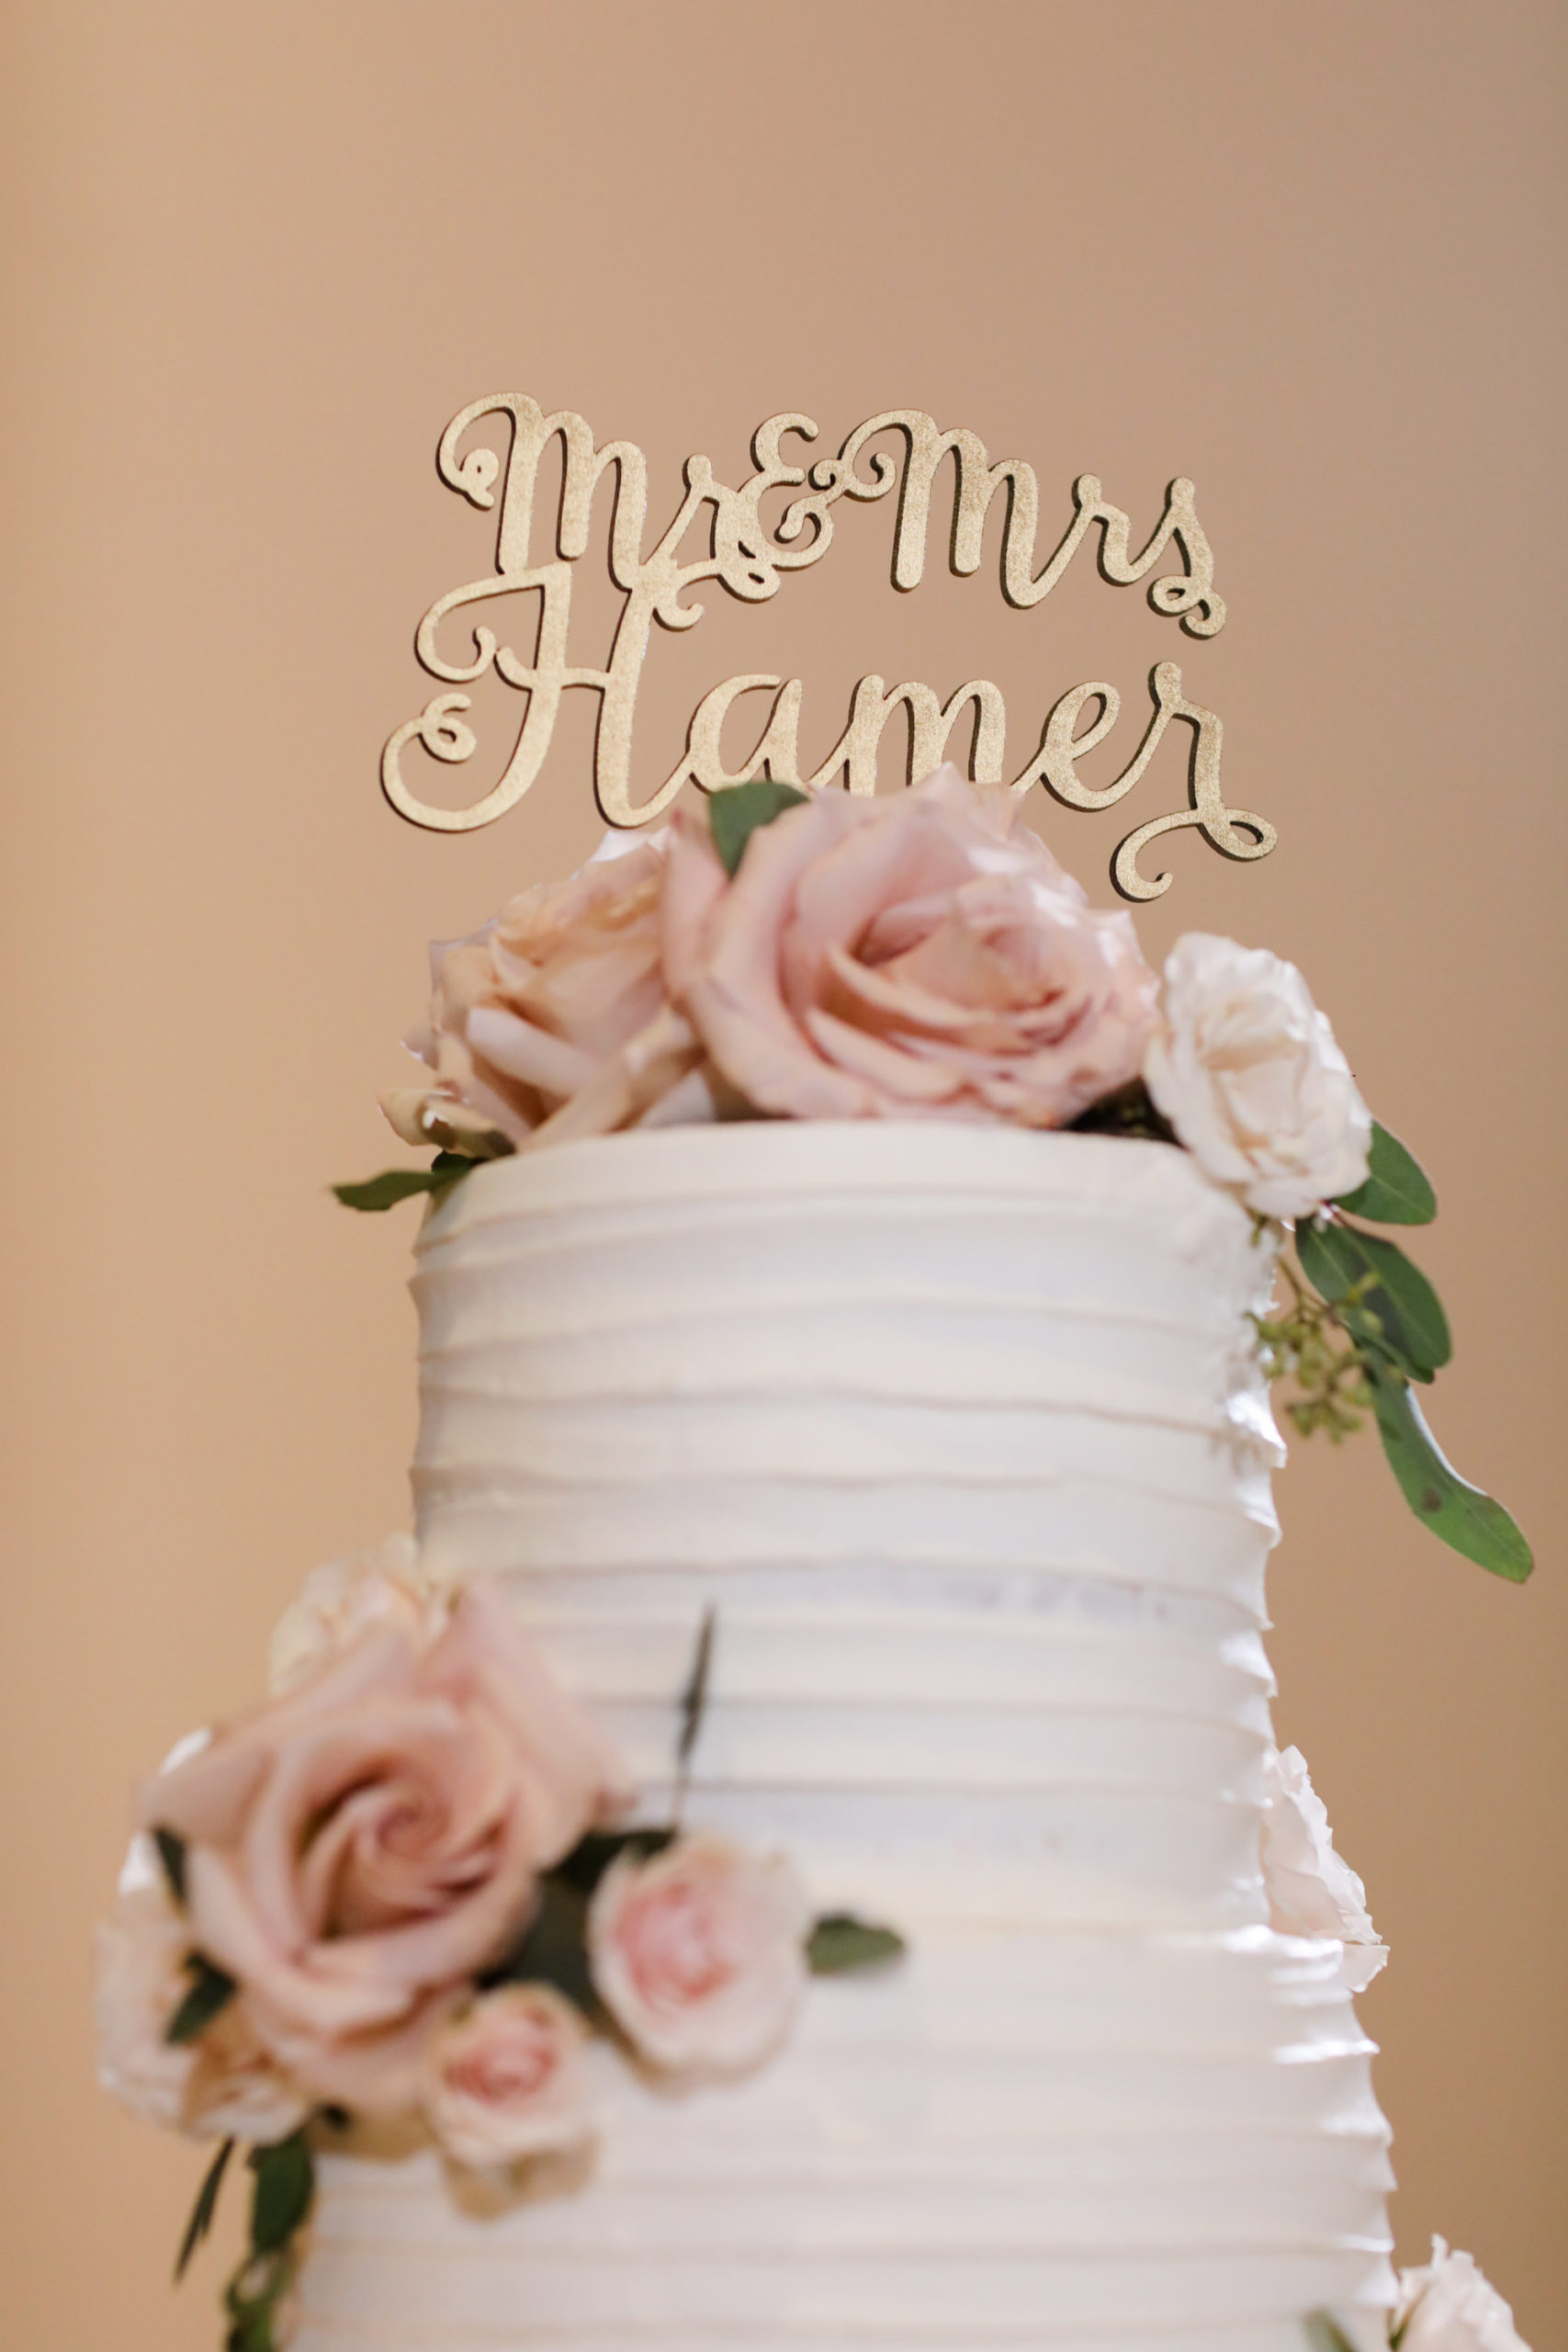 Ribbed Textured Buttercream Wedding Cake with Fresh Flowers Rusty Rose and Calligraphy Gold Cake Topper